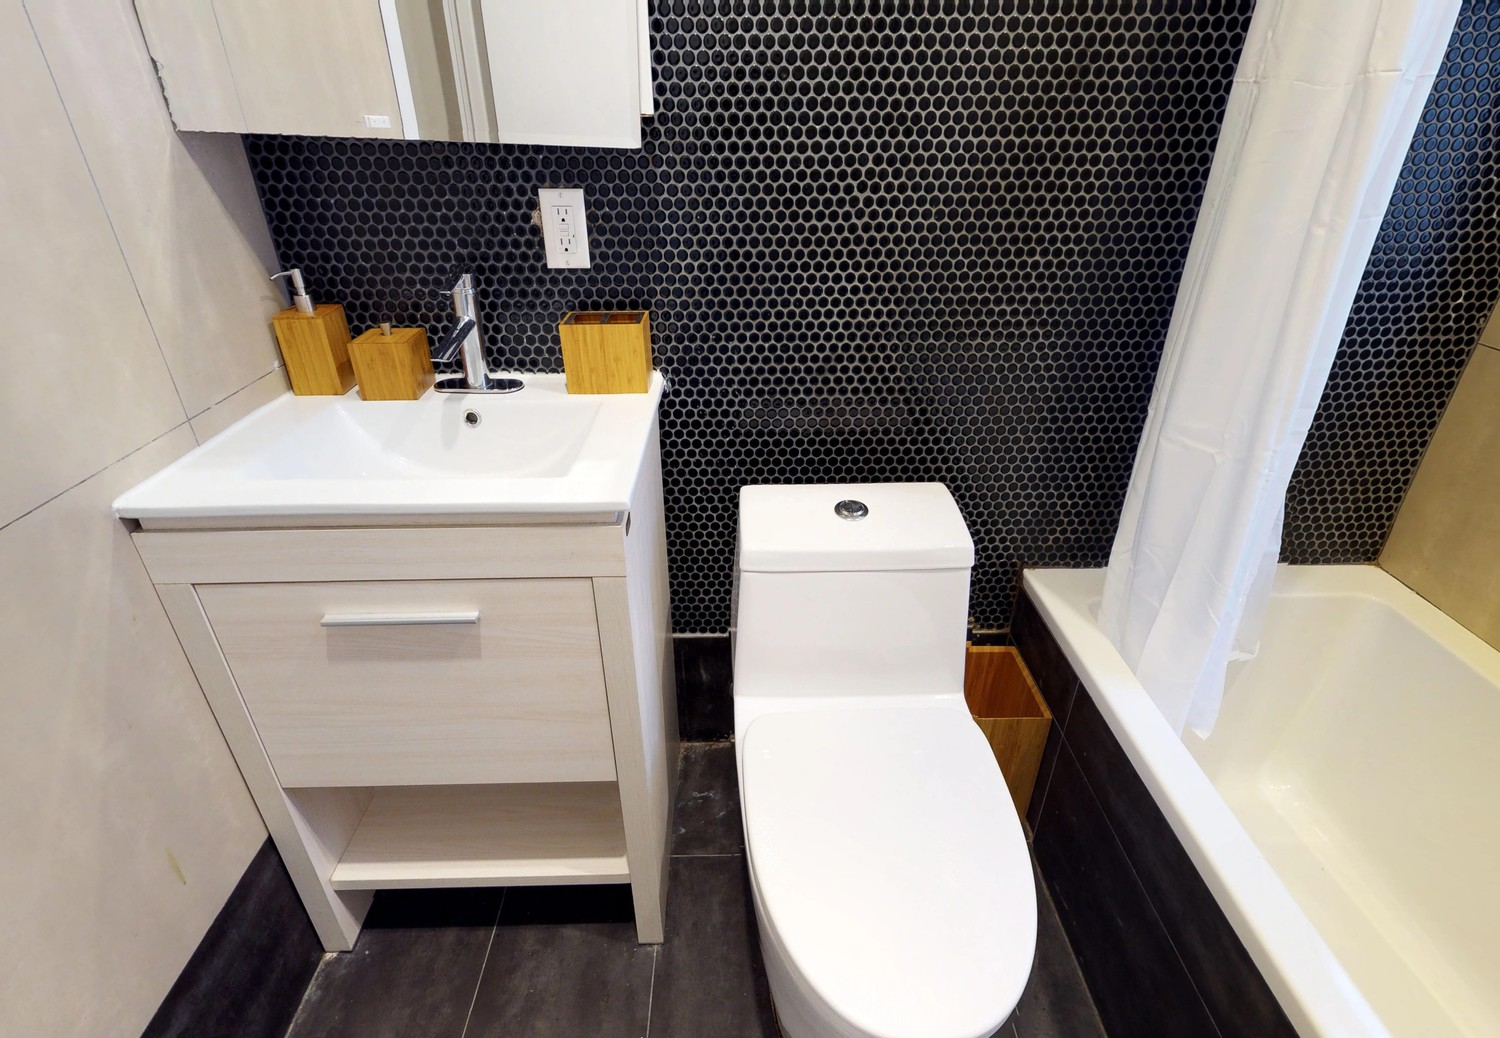 Private & Furnished Room in 4 Bed/ 2 Bath Shared Apt. + Utilities & WiFi Included!